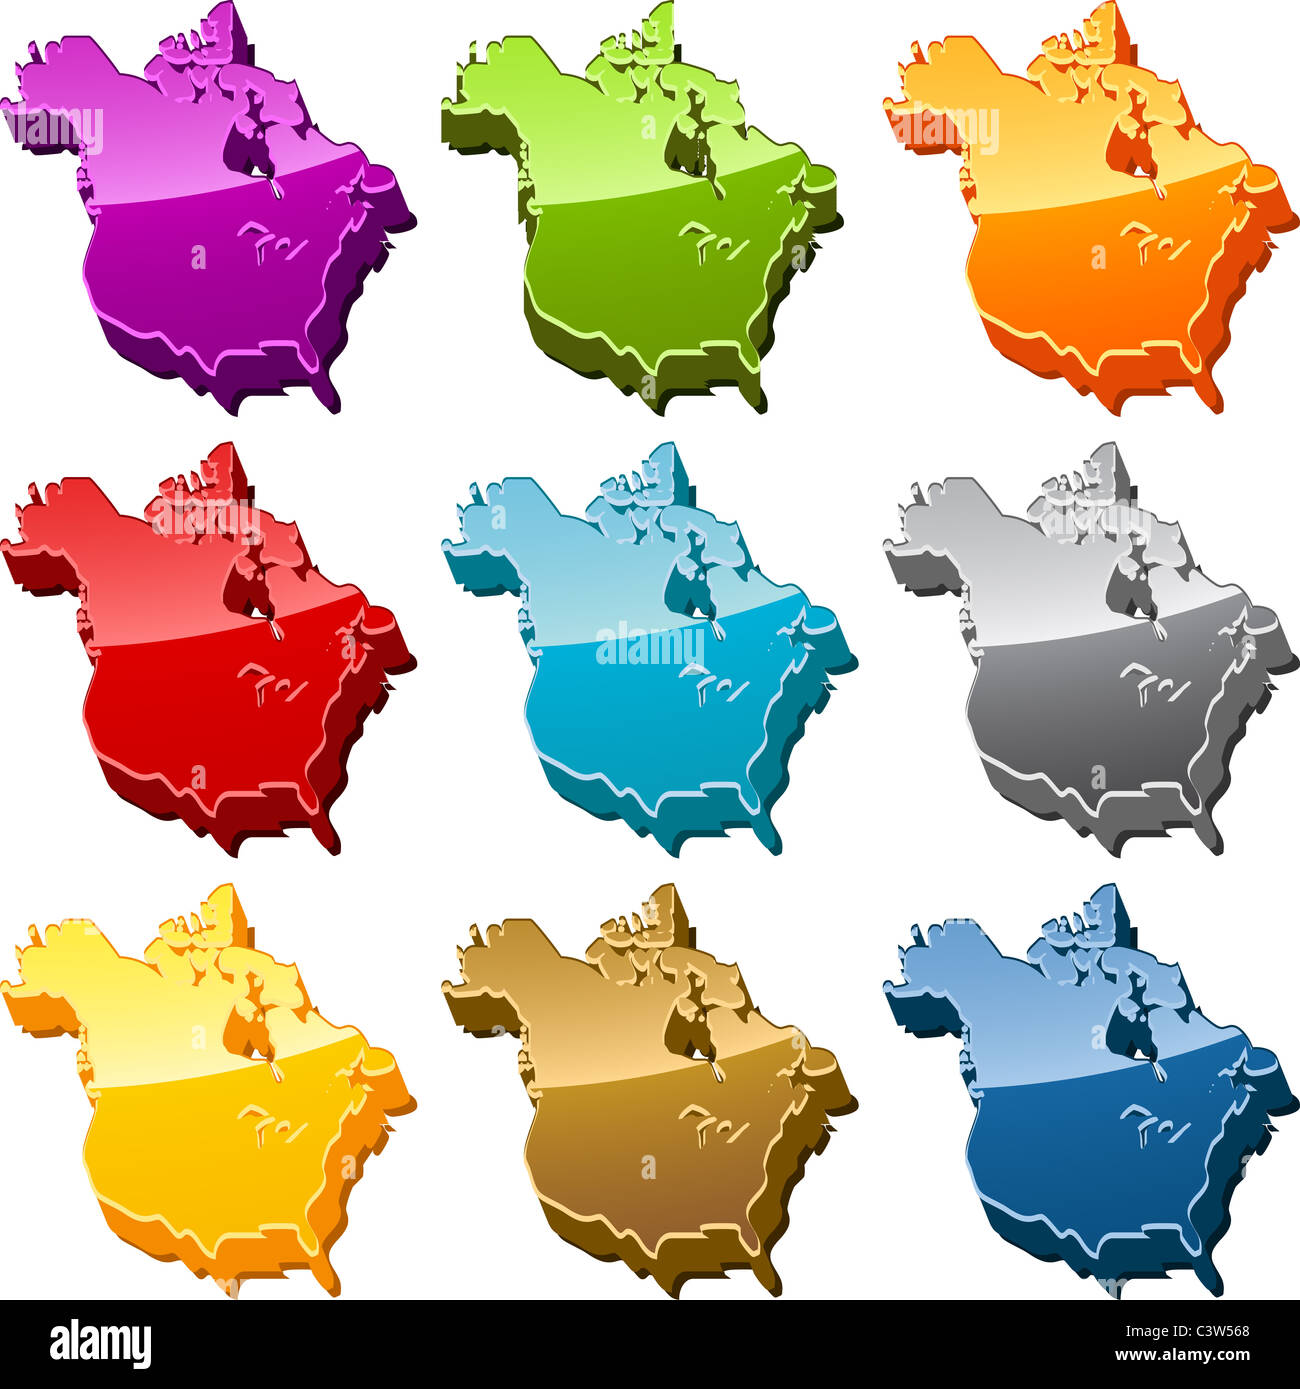 north america continent map icon button multicolored illustration